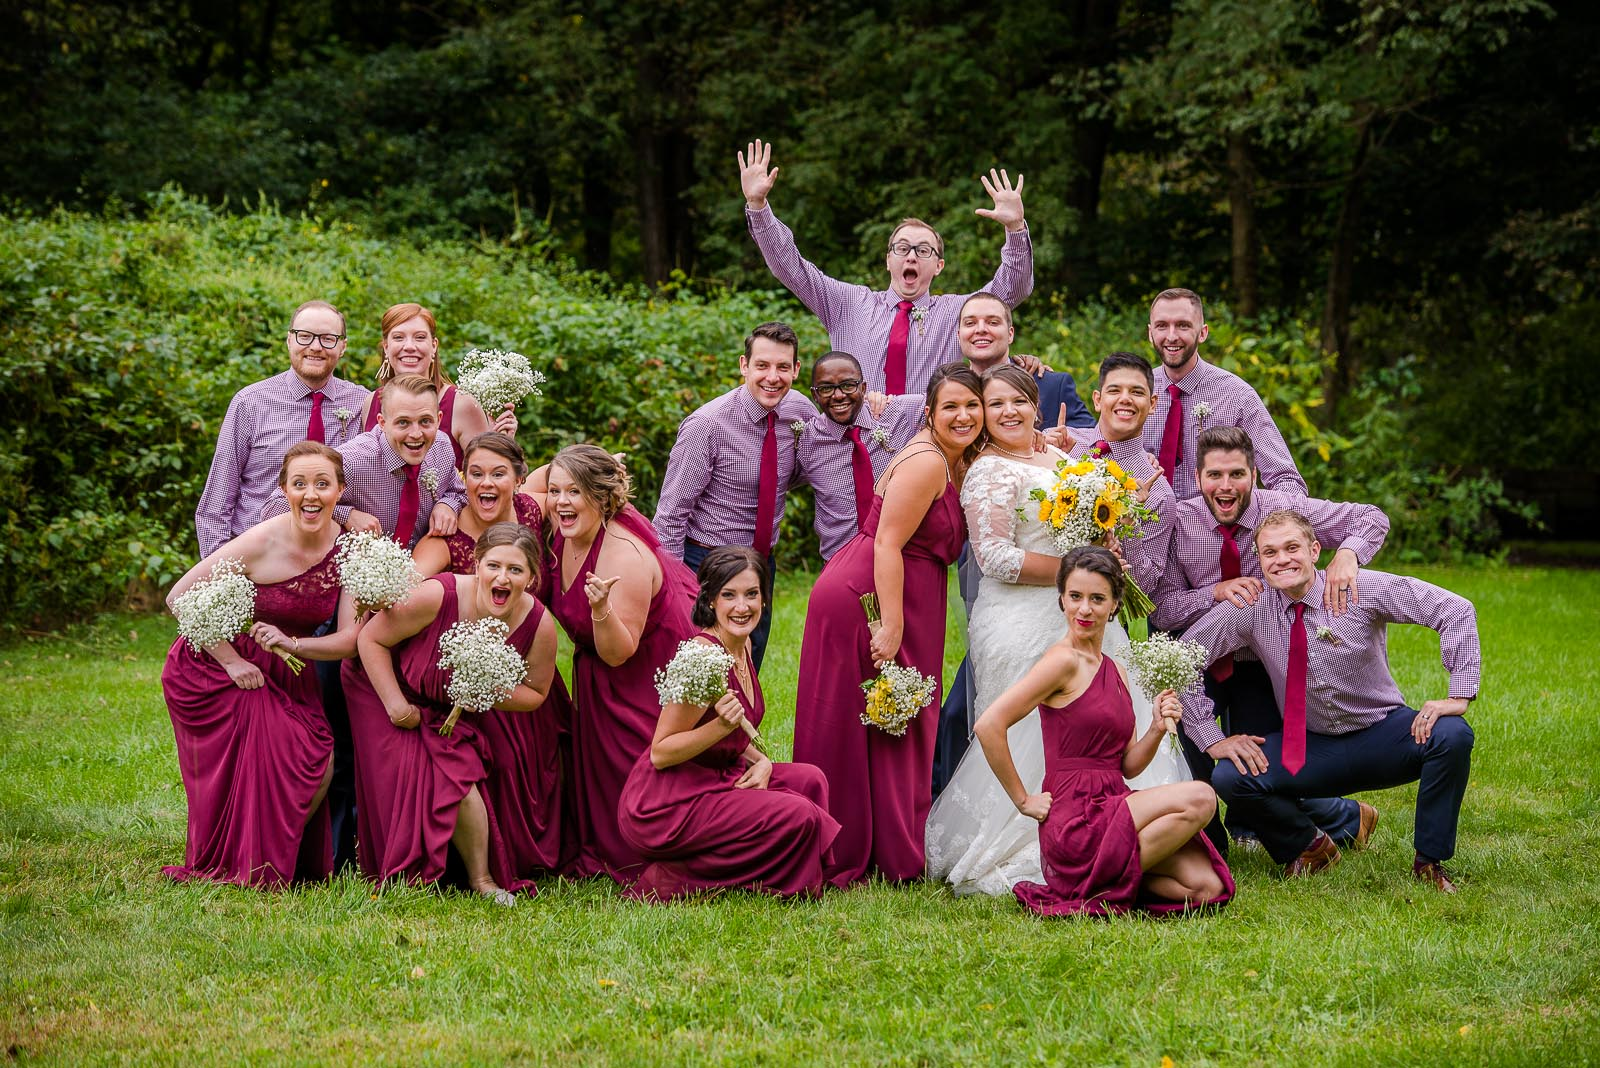 Eric_and_Christy_Photography_Blog_2018_Wed_moments-37